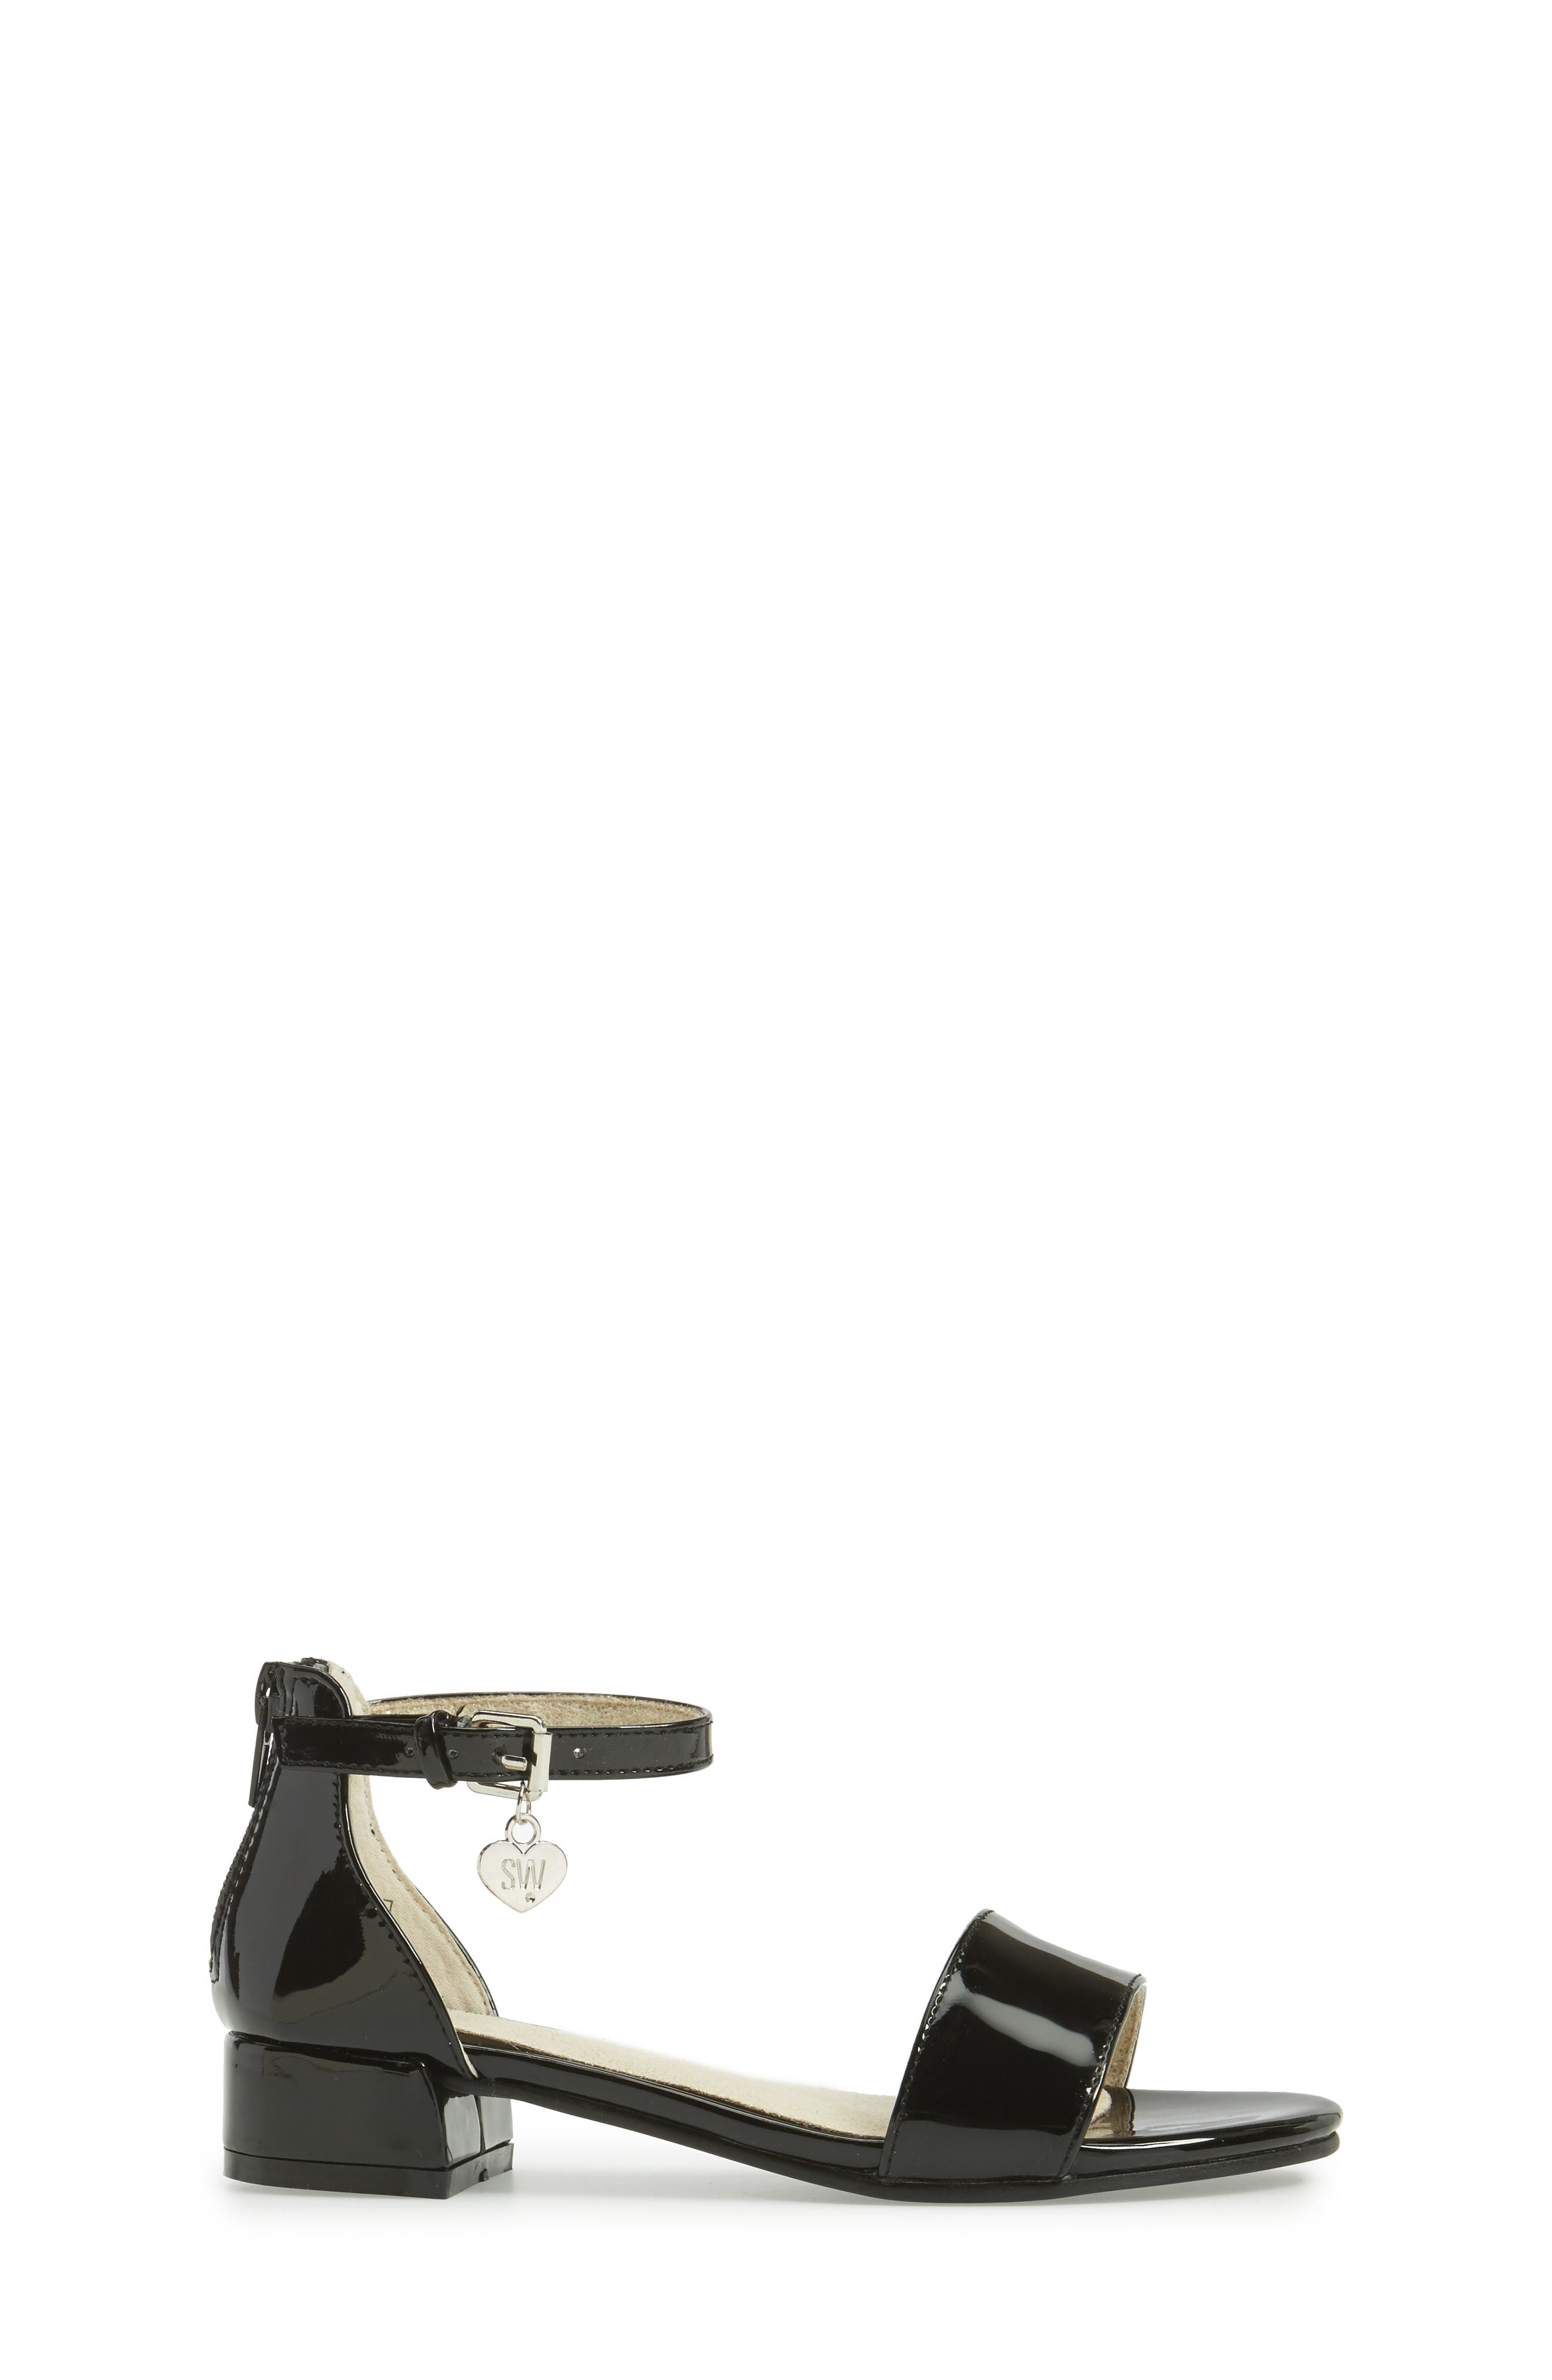 STUART WEITZMAN, Penelope Nola Sandal, Alternate thumbnail 3, color, BLACK FAUX PATENT